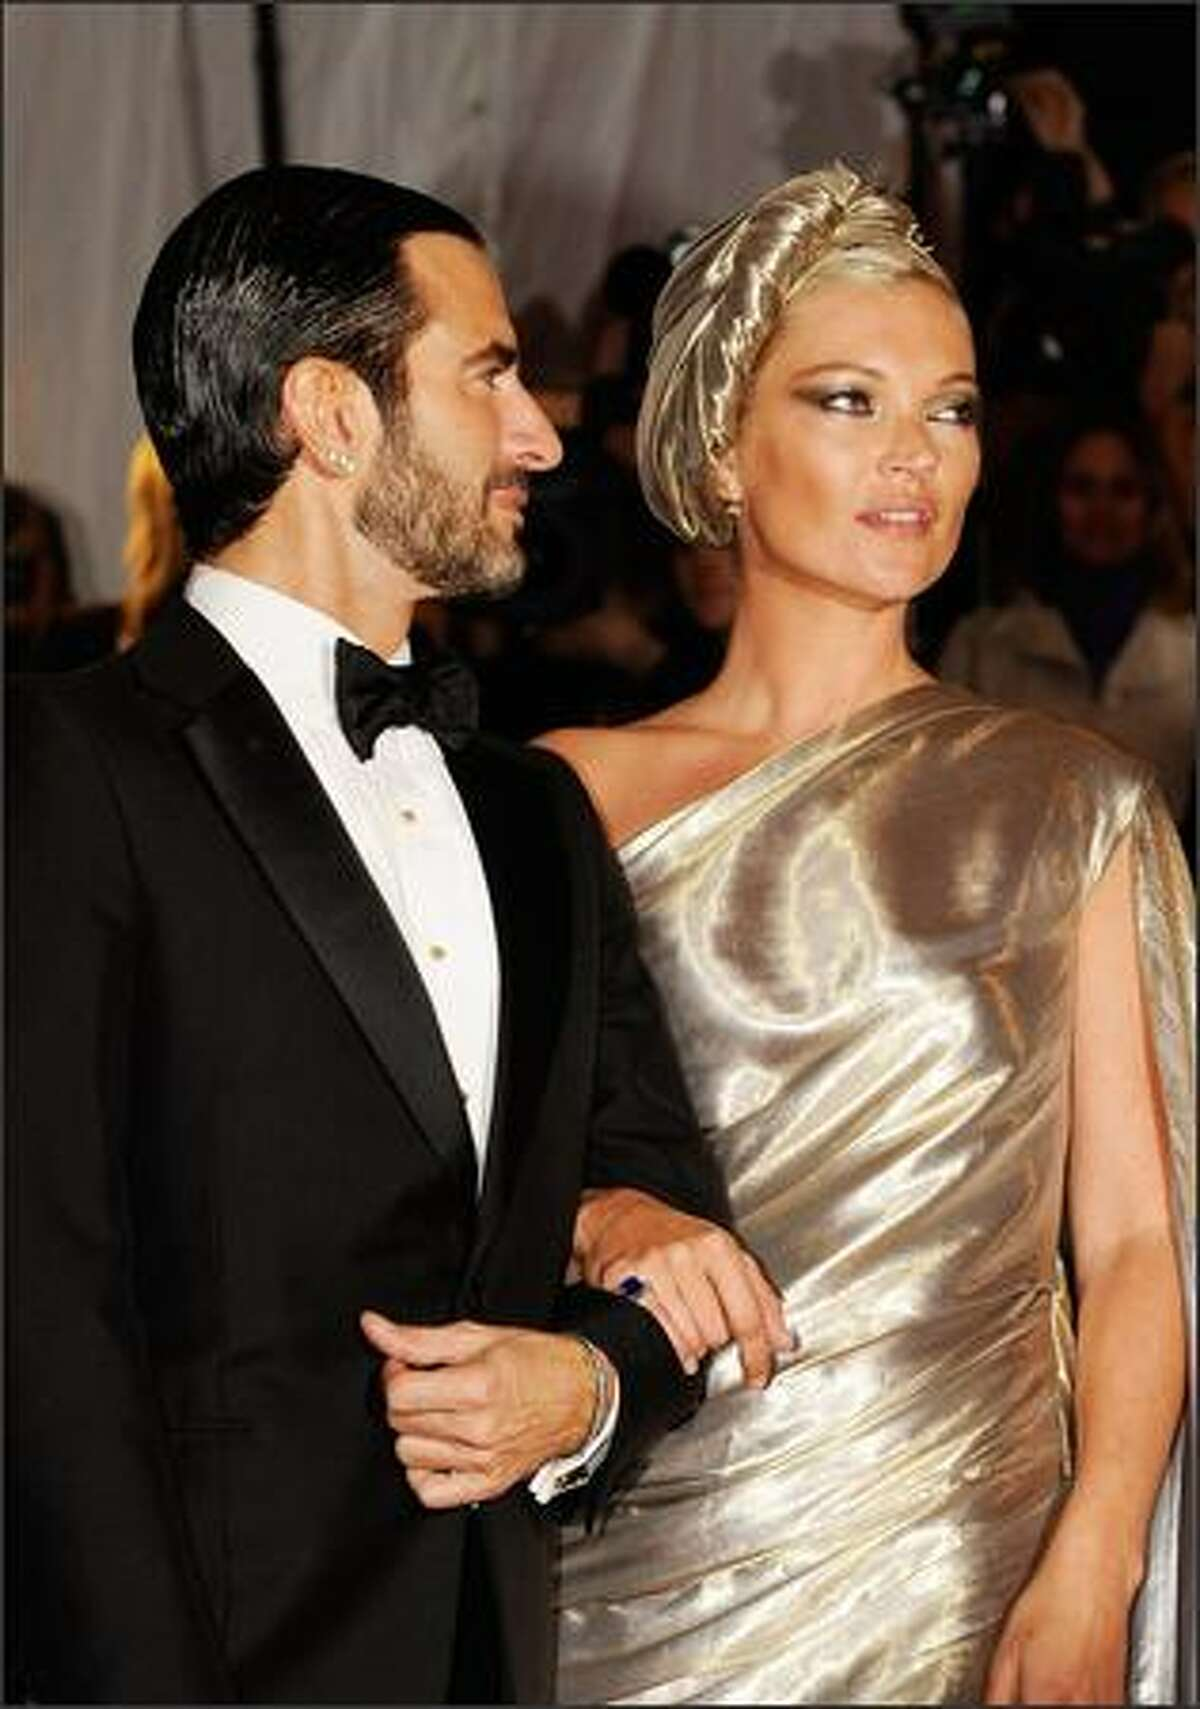 """(L-R) Model Kate Moss and designer Marc Jacobs attend """"The Model as Muse: Embodying Fashion"""" Costume Institute Gala at The Metropolitan Museum of Art in New York City."""